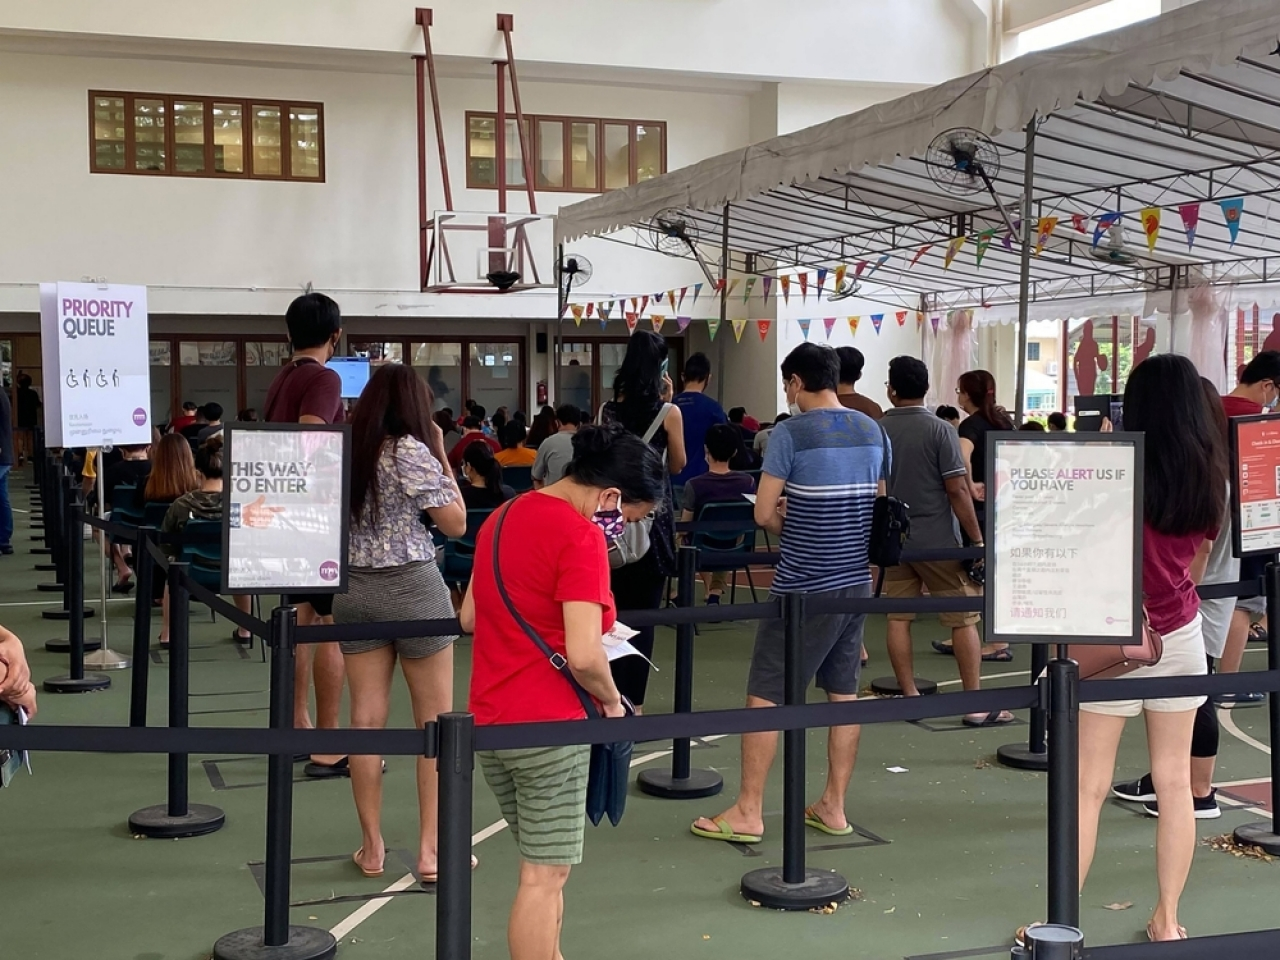 Singaporeans queue at a vaccination centre in the city-state. File image: Shutterstock